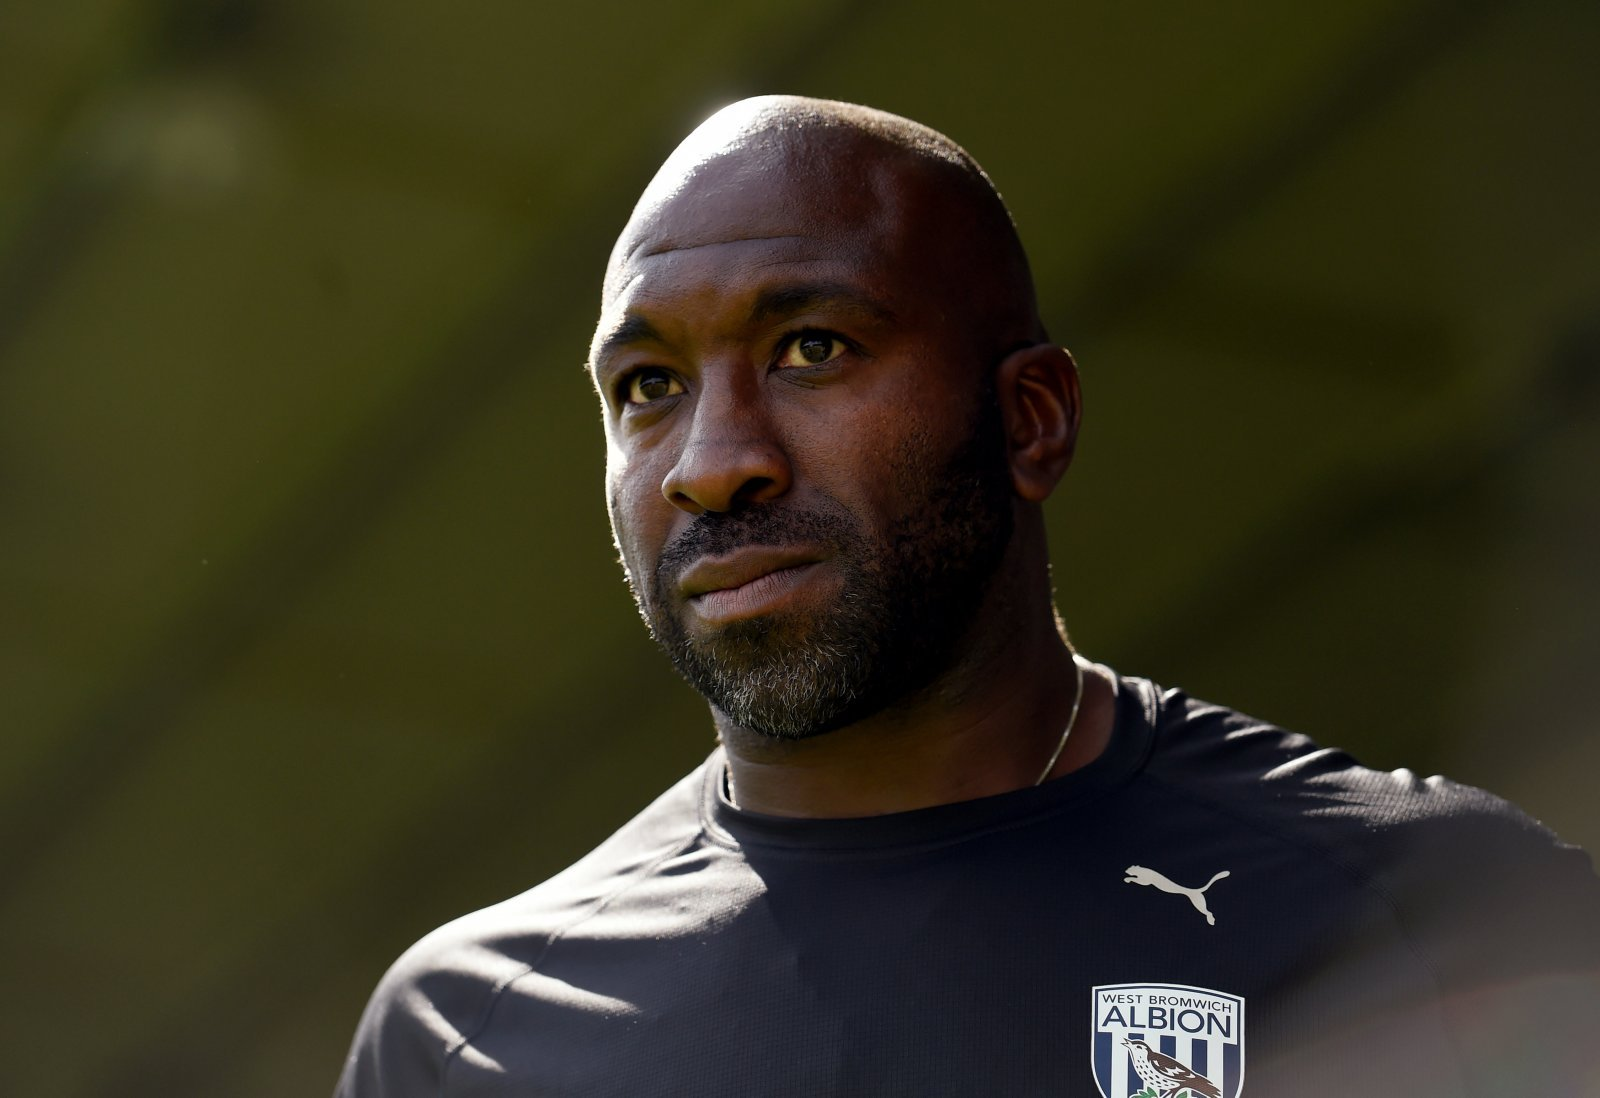 West Brom team news: Moore handed huge boost ahead of Leeds visit